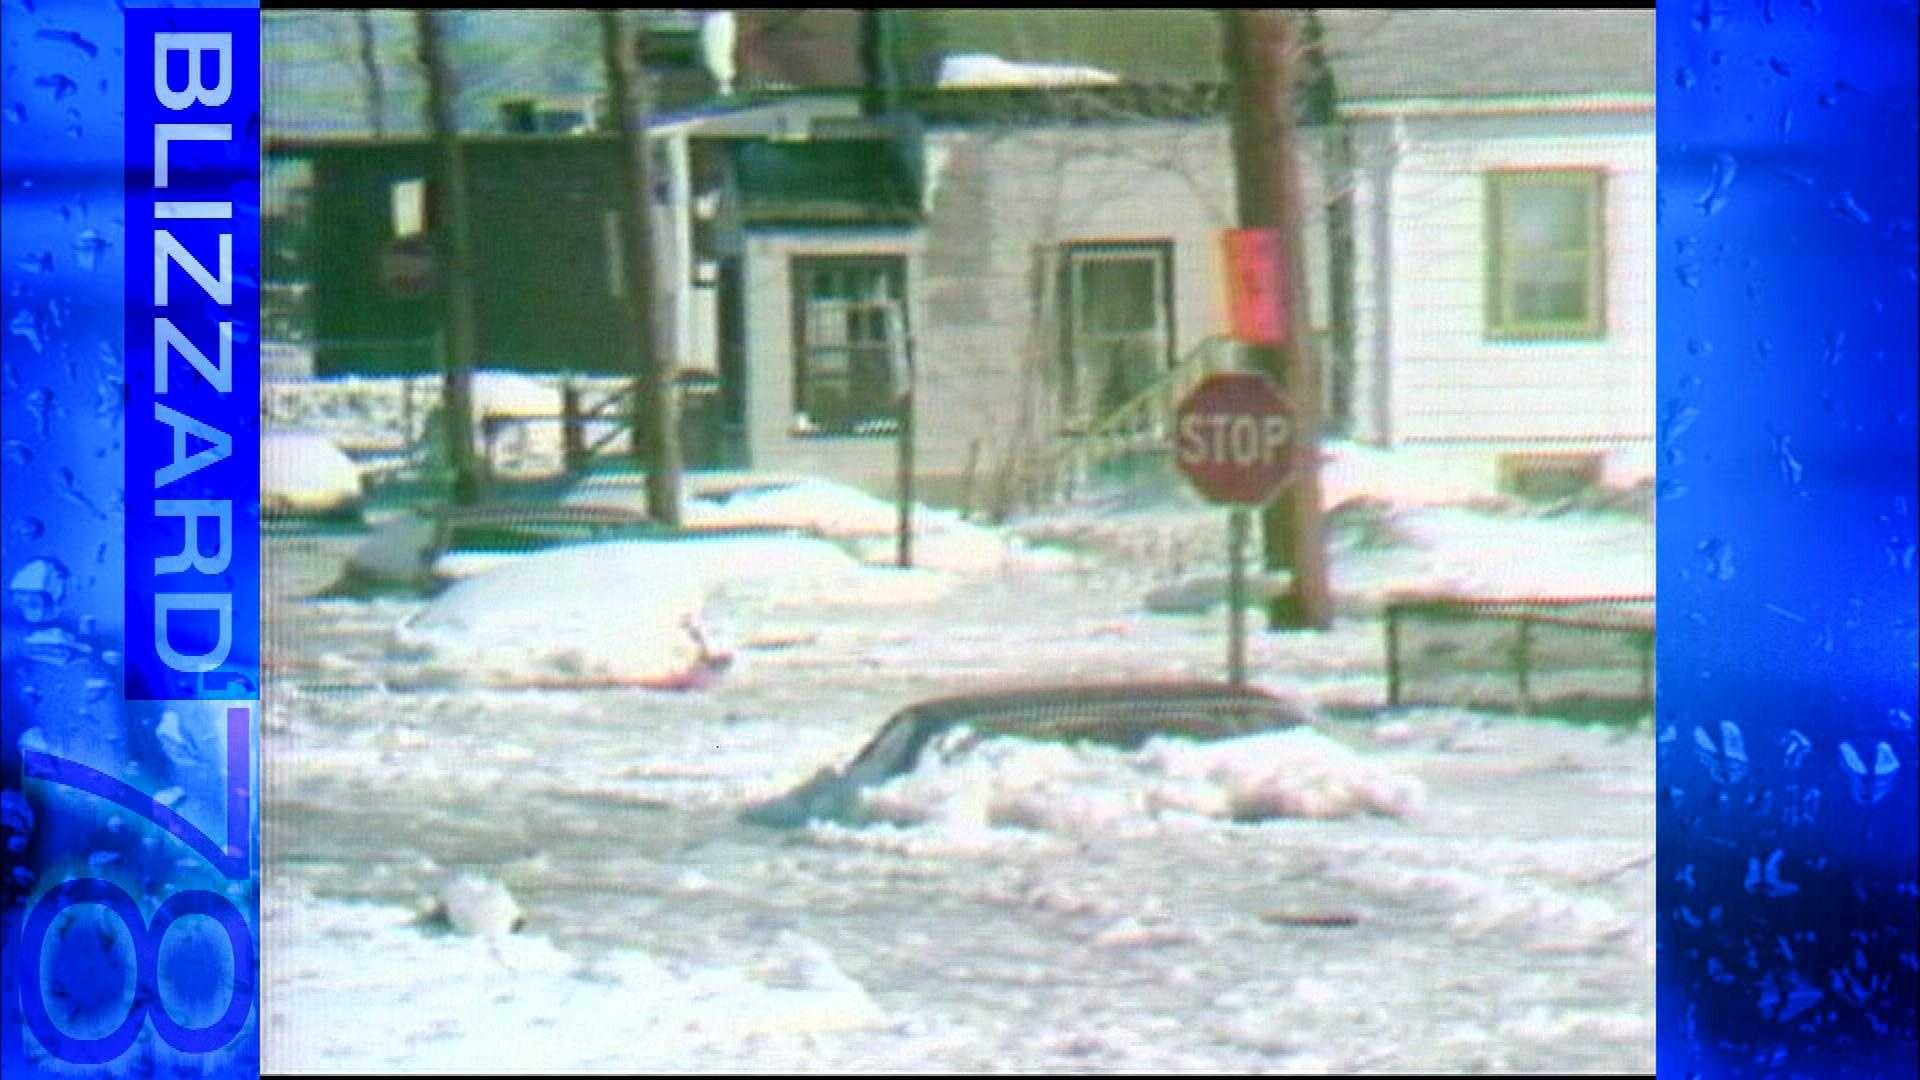 Image: Blizzard of '78